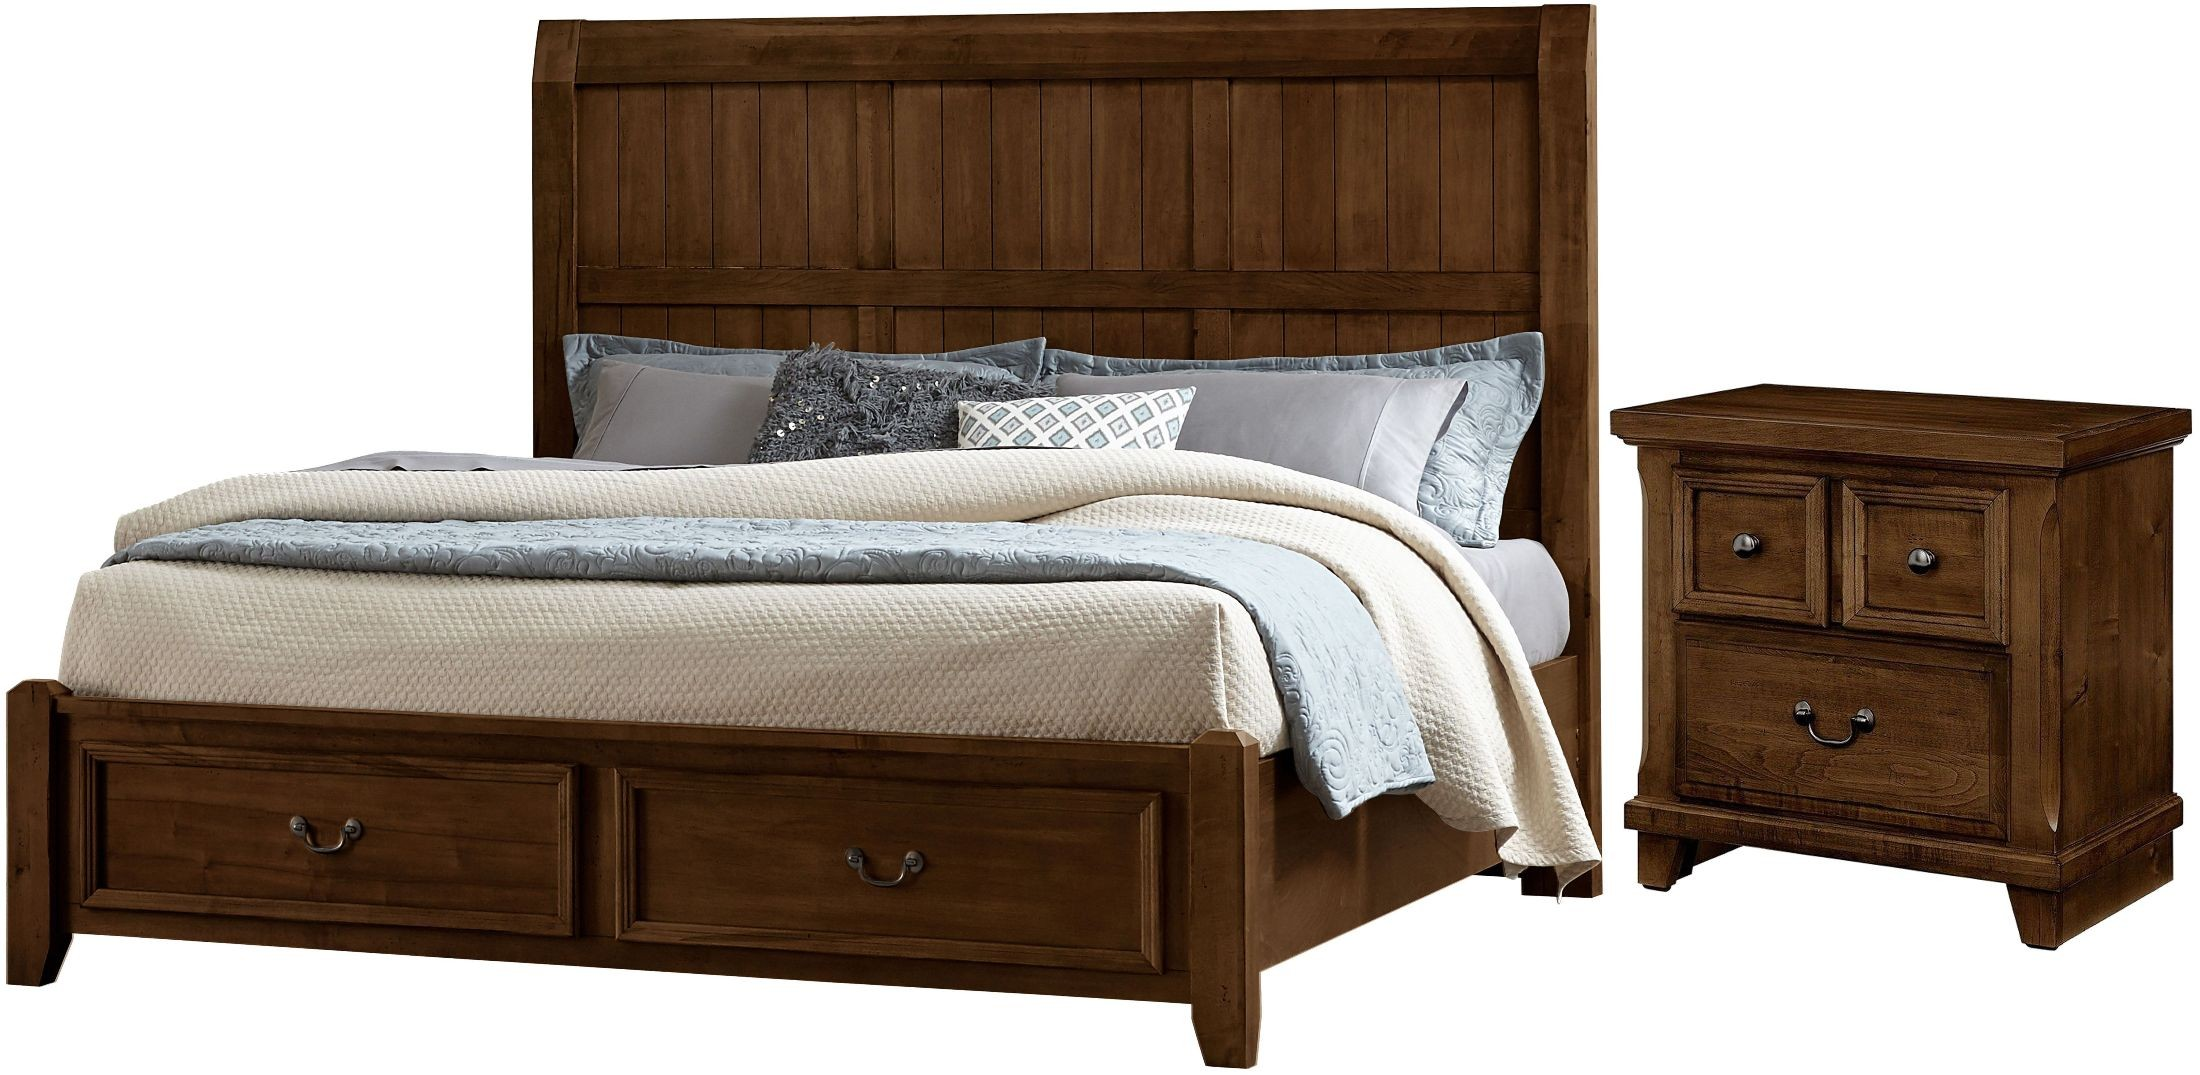 Timber Creek Rustic Cherry 2 Drawer Nightstand From Virginia House Coleman Furniture